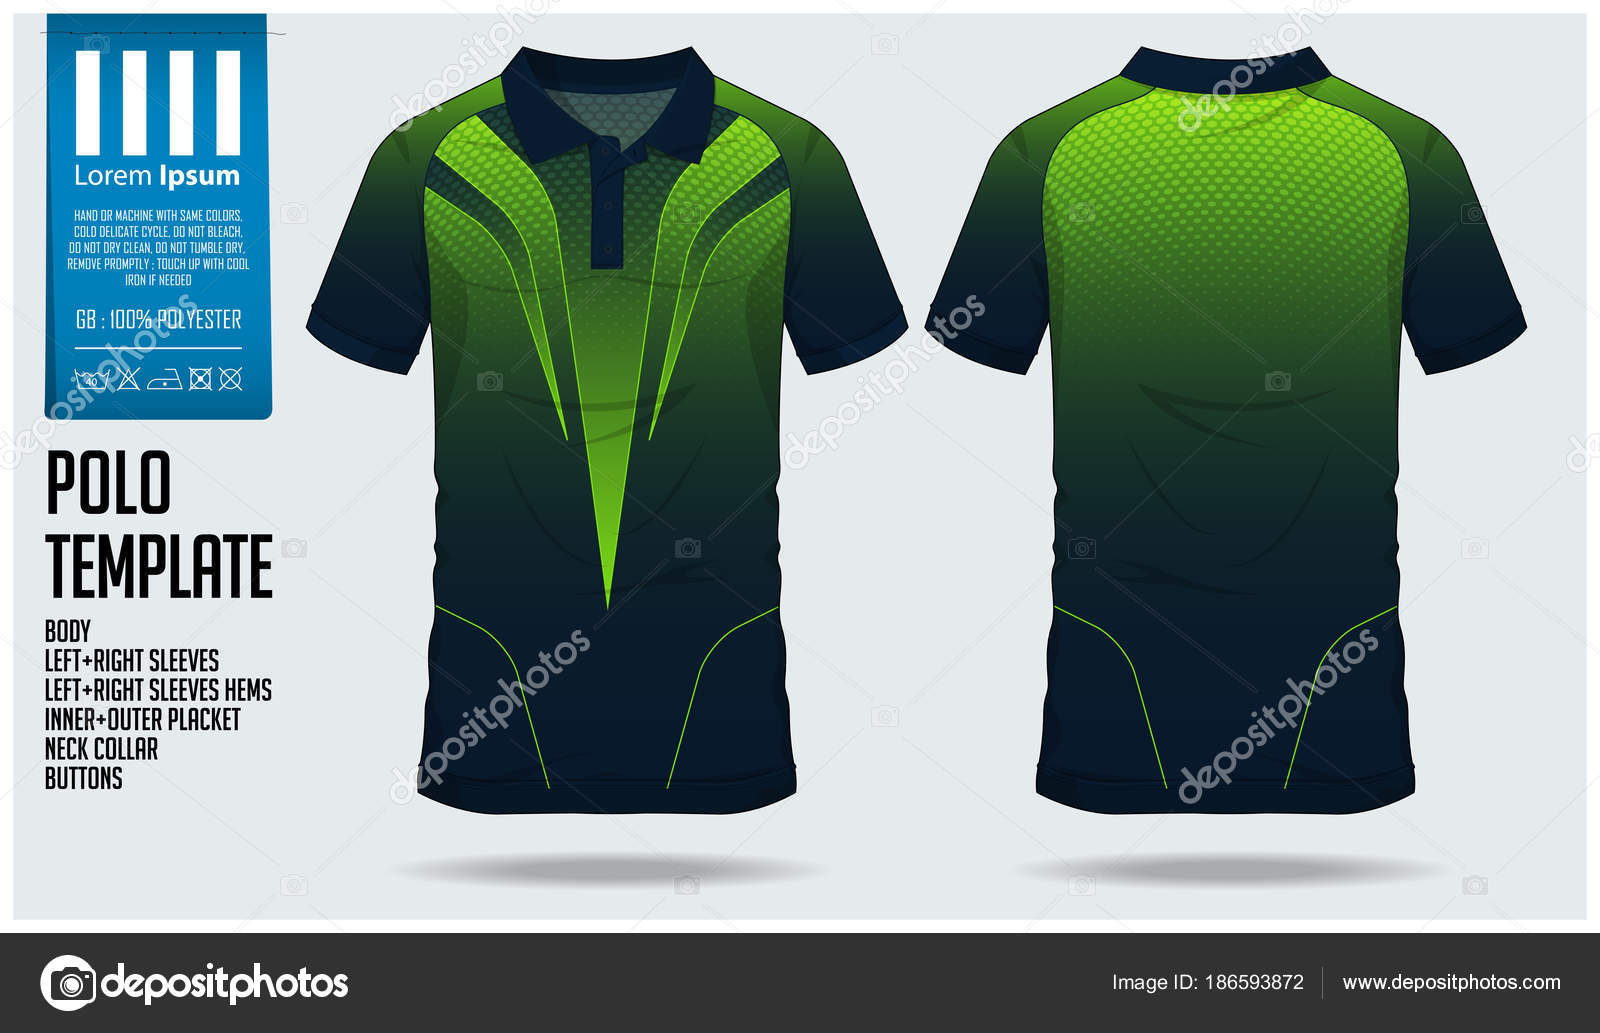 143932c2a Green Polo t shirt sport design template for soccer jersey, football kit or  sport club.